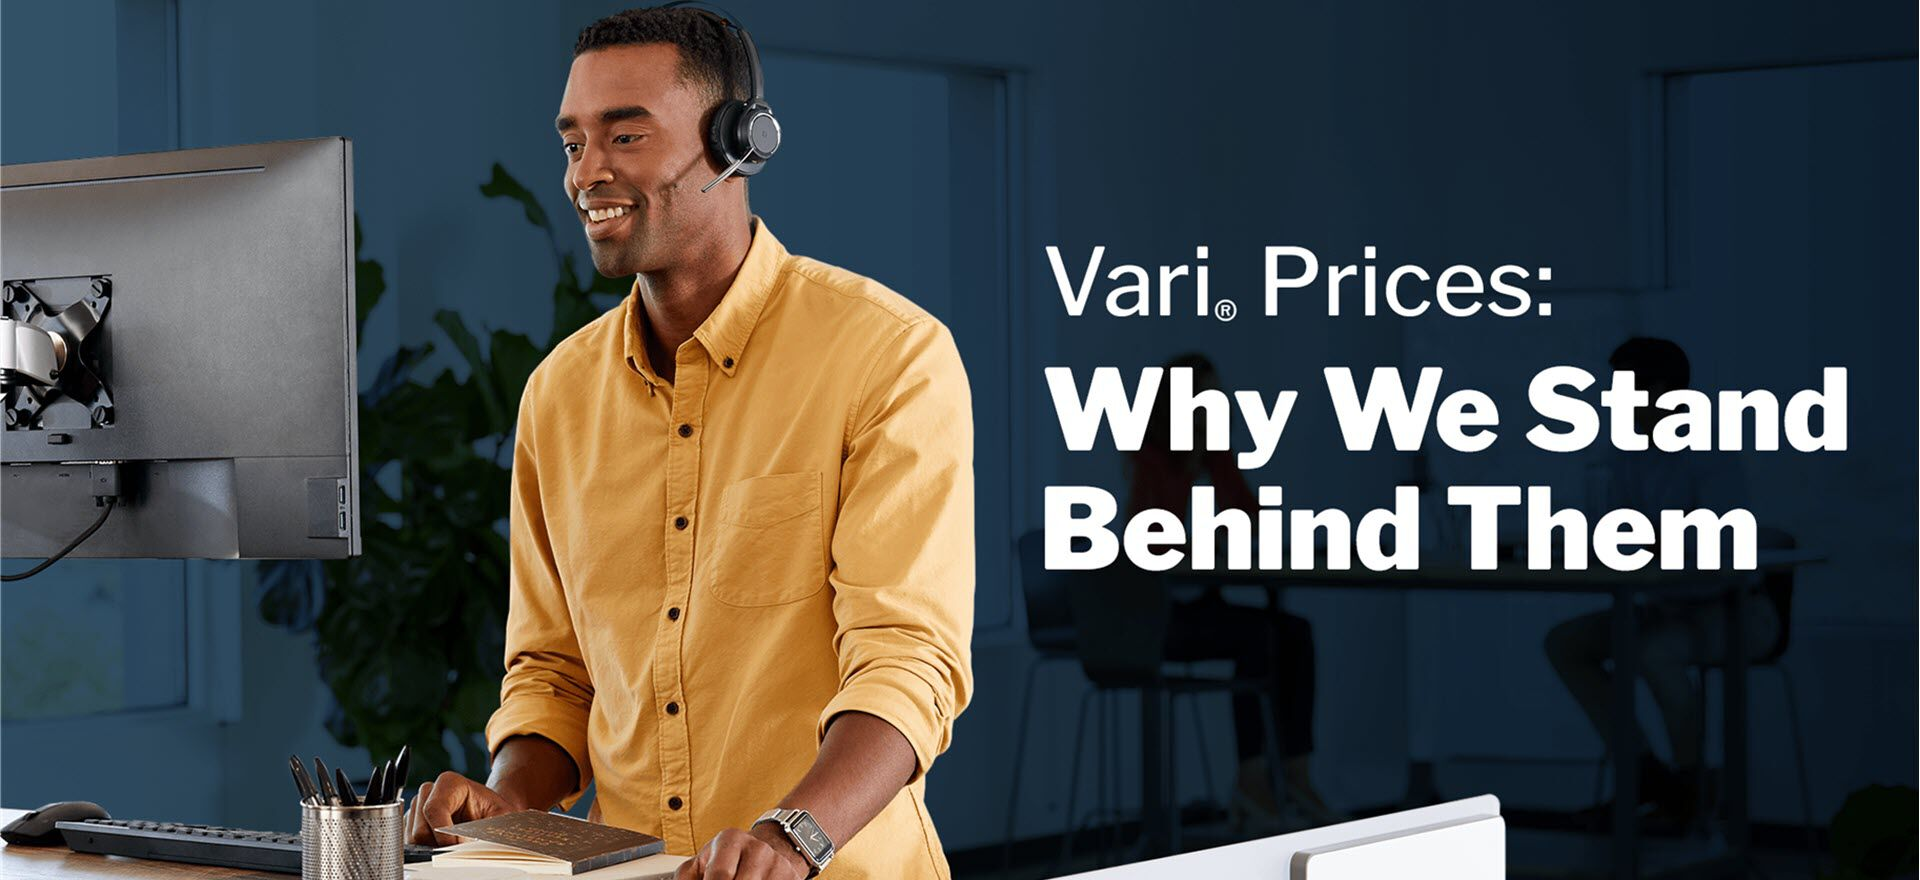 professional working at vari table with headset with the following text - vari prices why we stand behind them